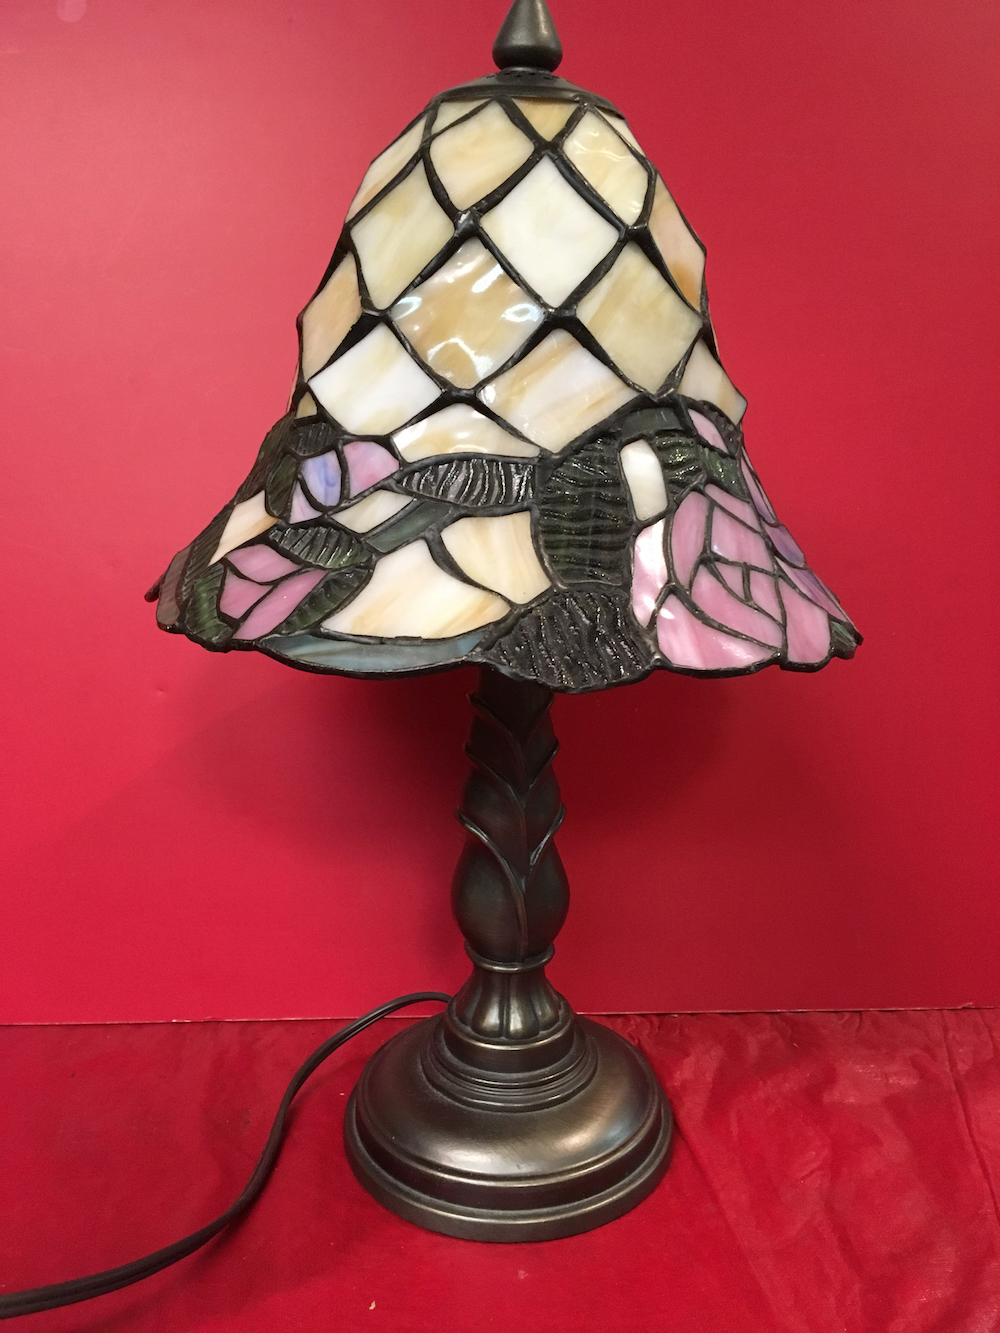 Tiffany Style Lamp - St. Jude Children's Research Hospital